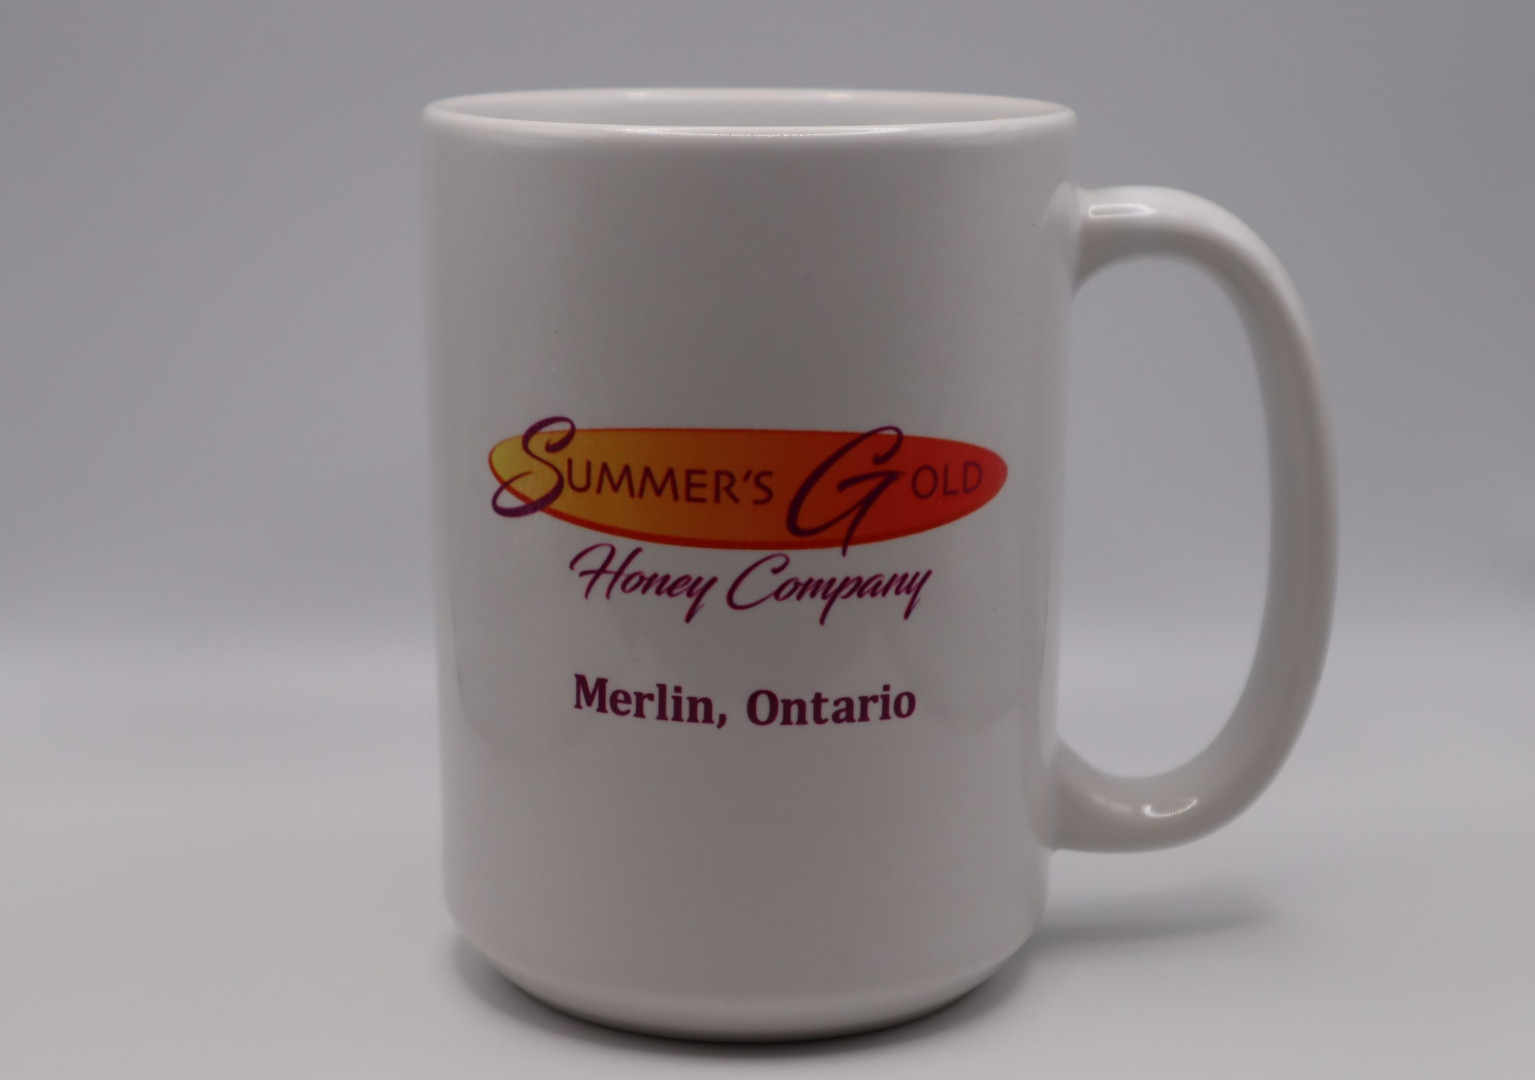 15 oz Ceramic Mug Summer's Gold